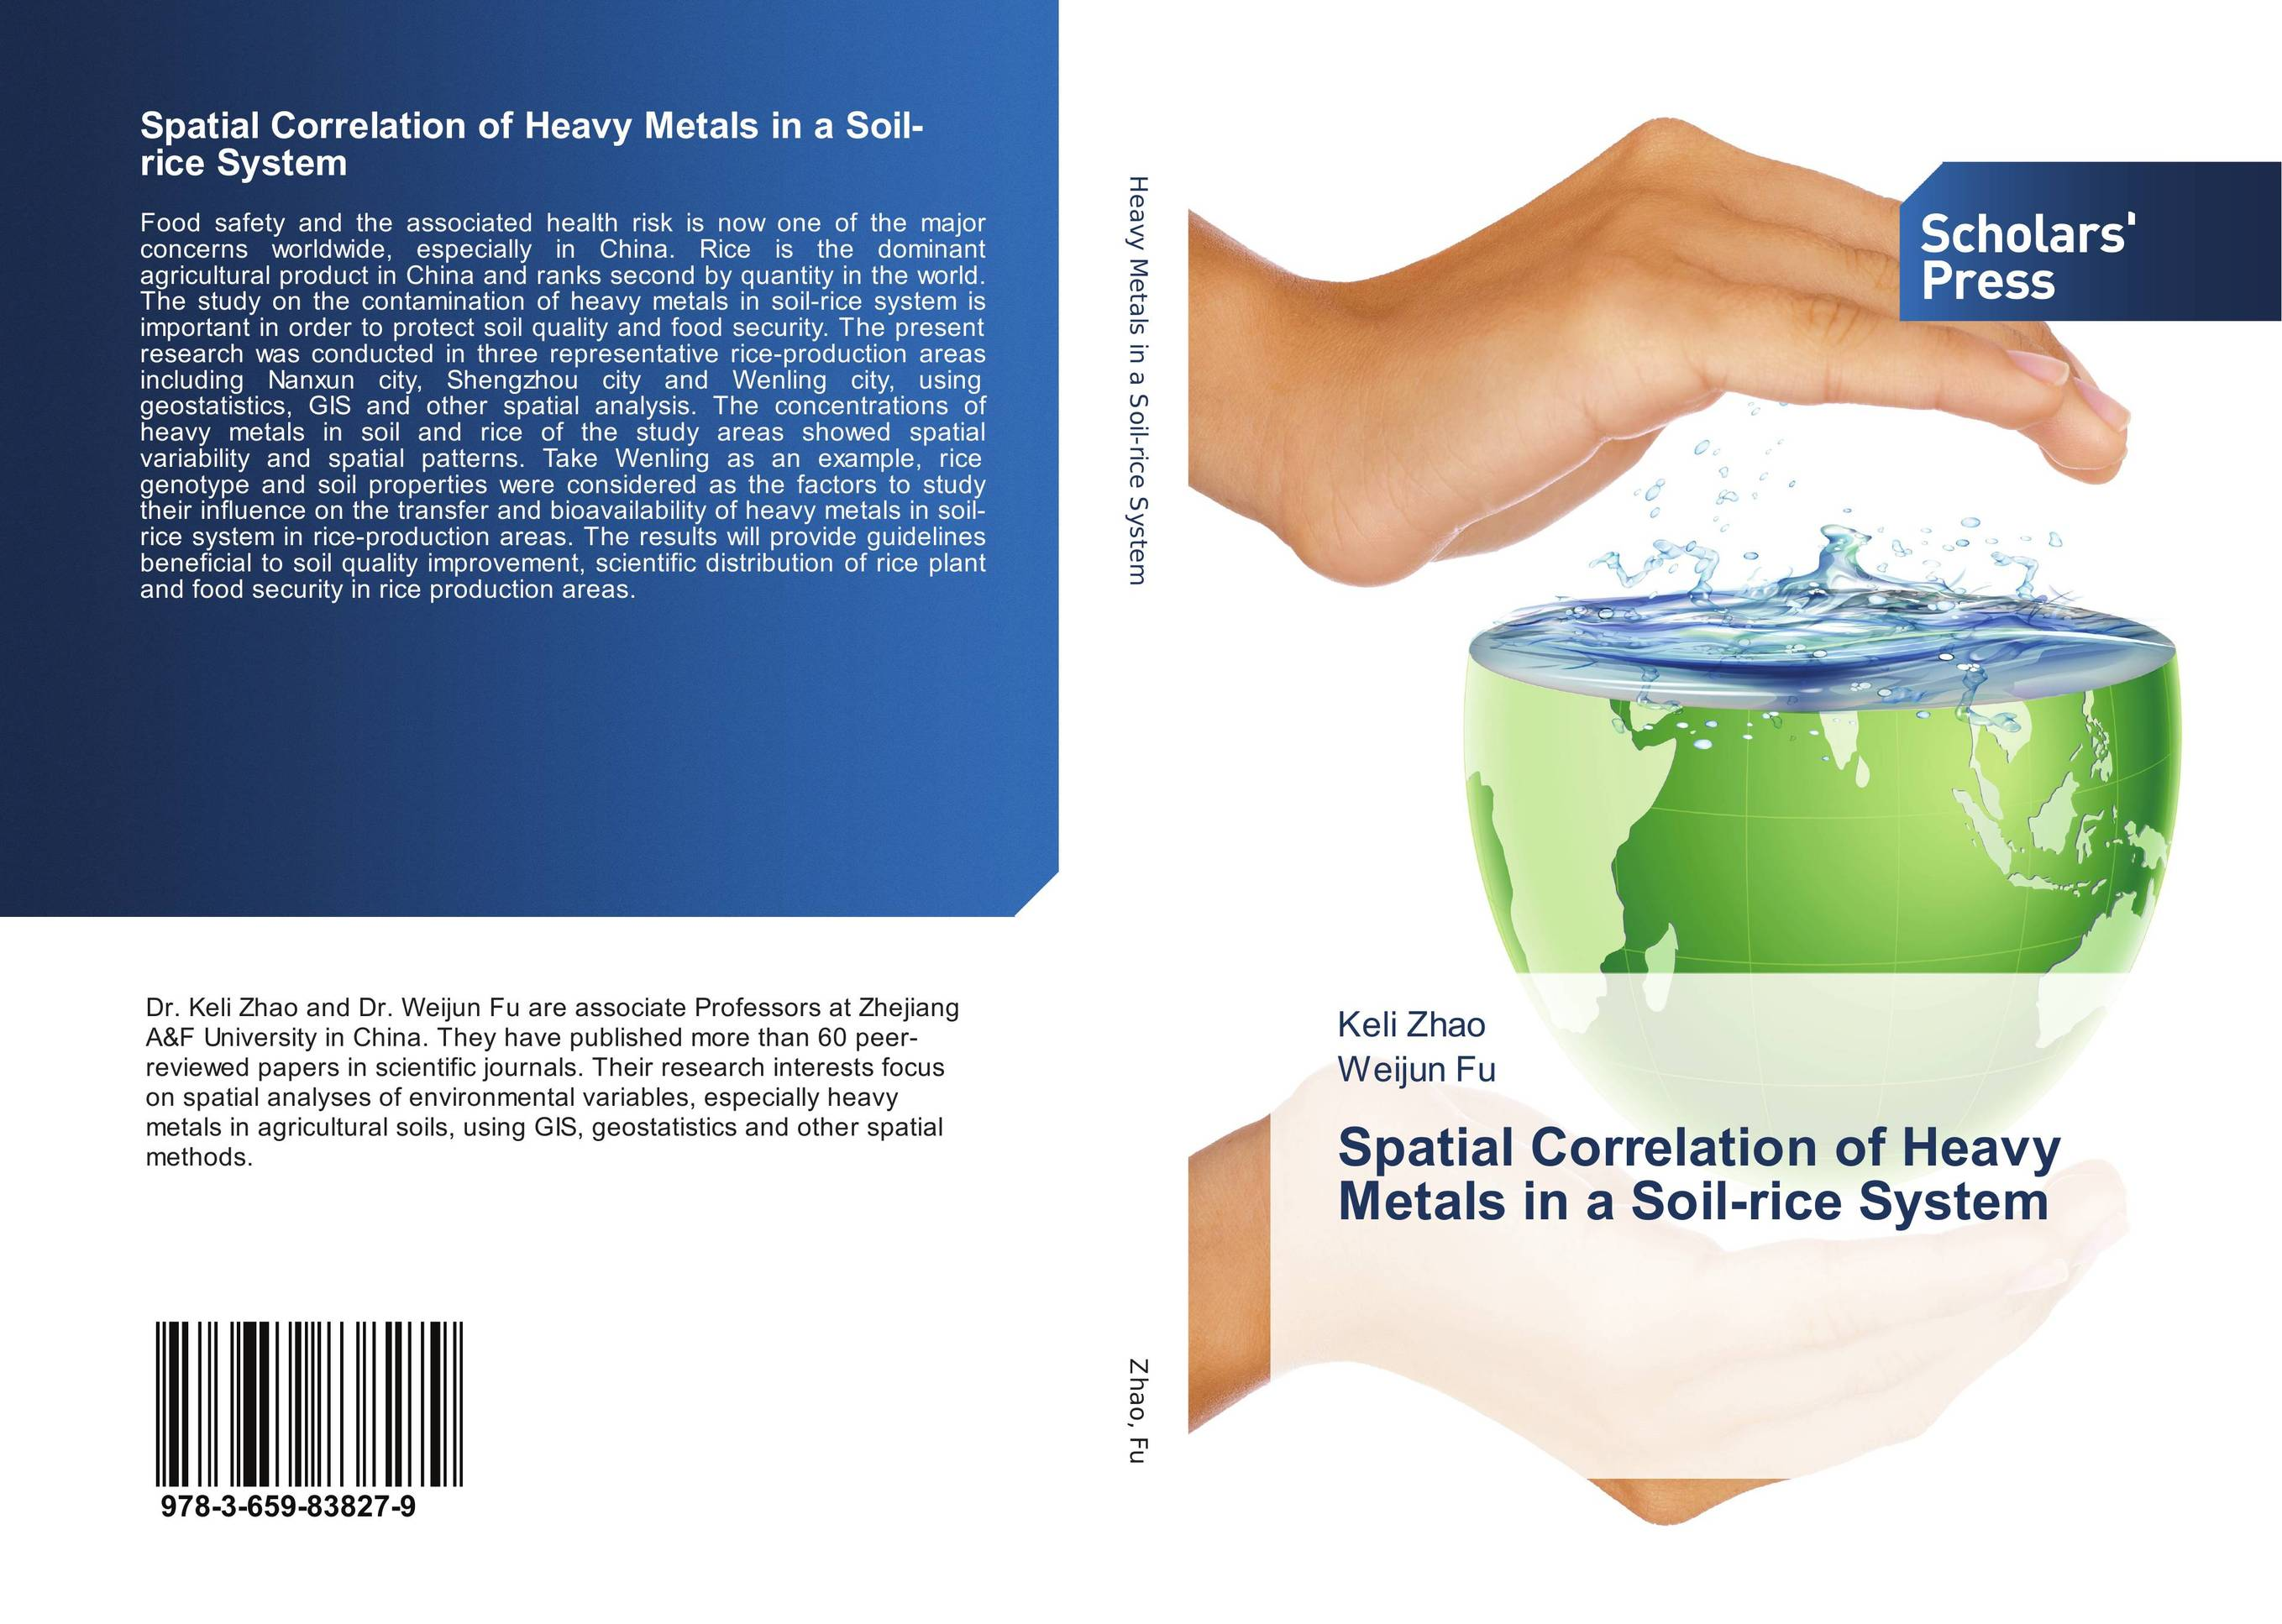 Spatial Correlation of Heavy Metals in a Soil-rice System belousov a security features of banknotes and other documents methods of authentication manual денежные билеты бланки ценных бумаг и документов